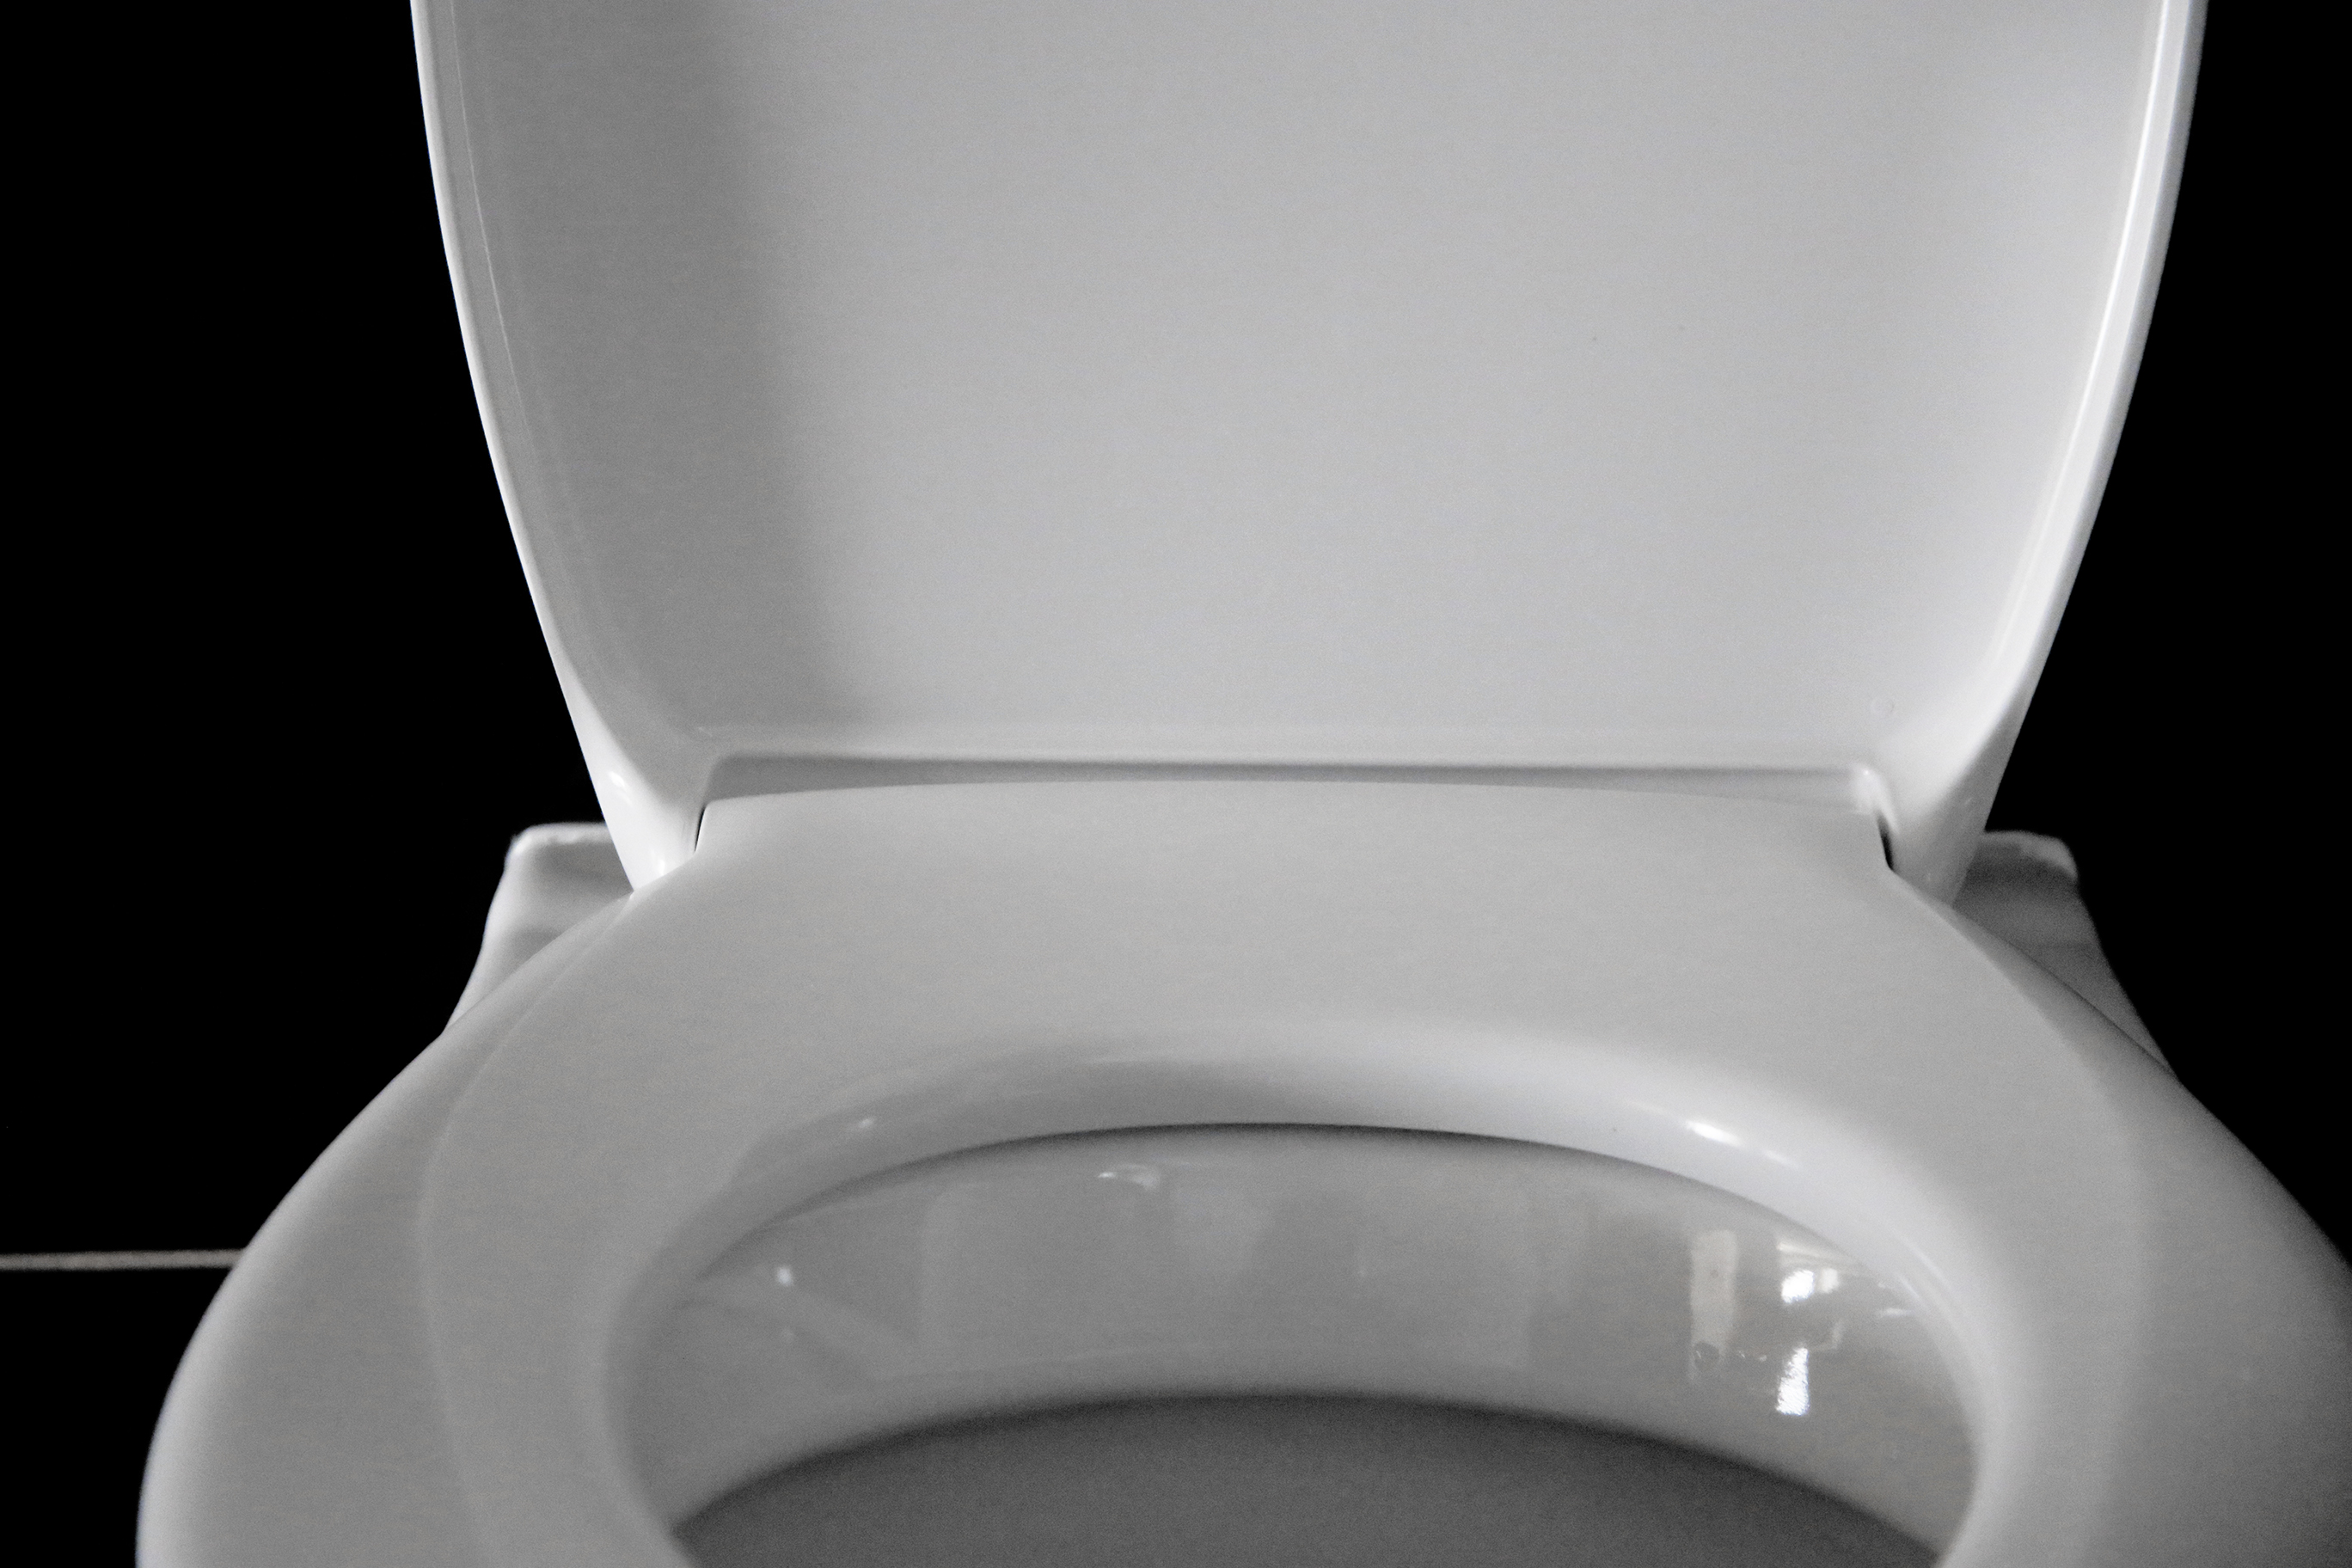 How to Control How Much Water Fills in a Toilet Bowl   Home